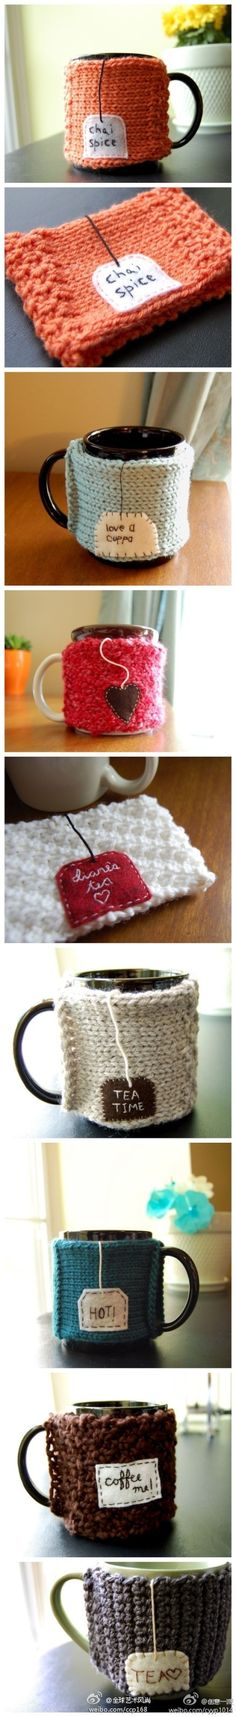 Simple DIY coffee holder using old sweater sleeves